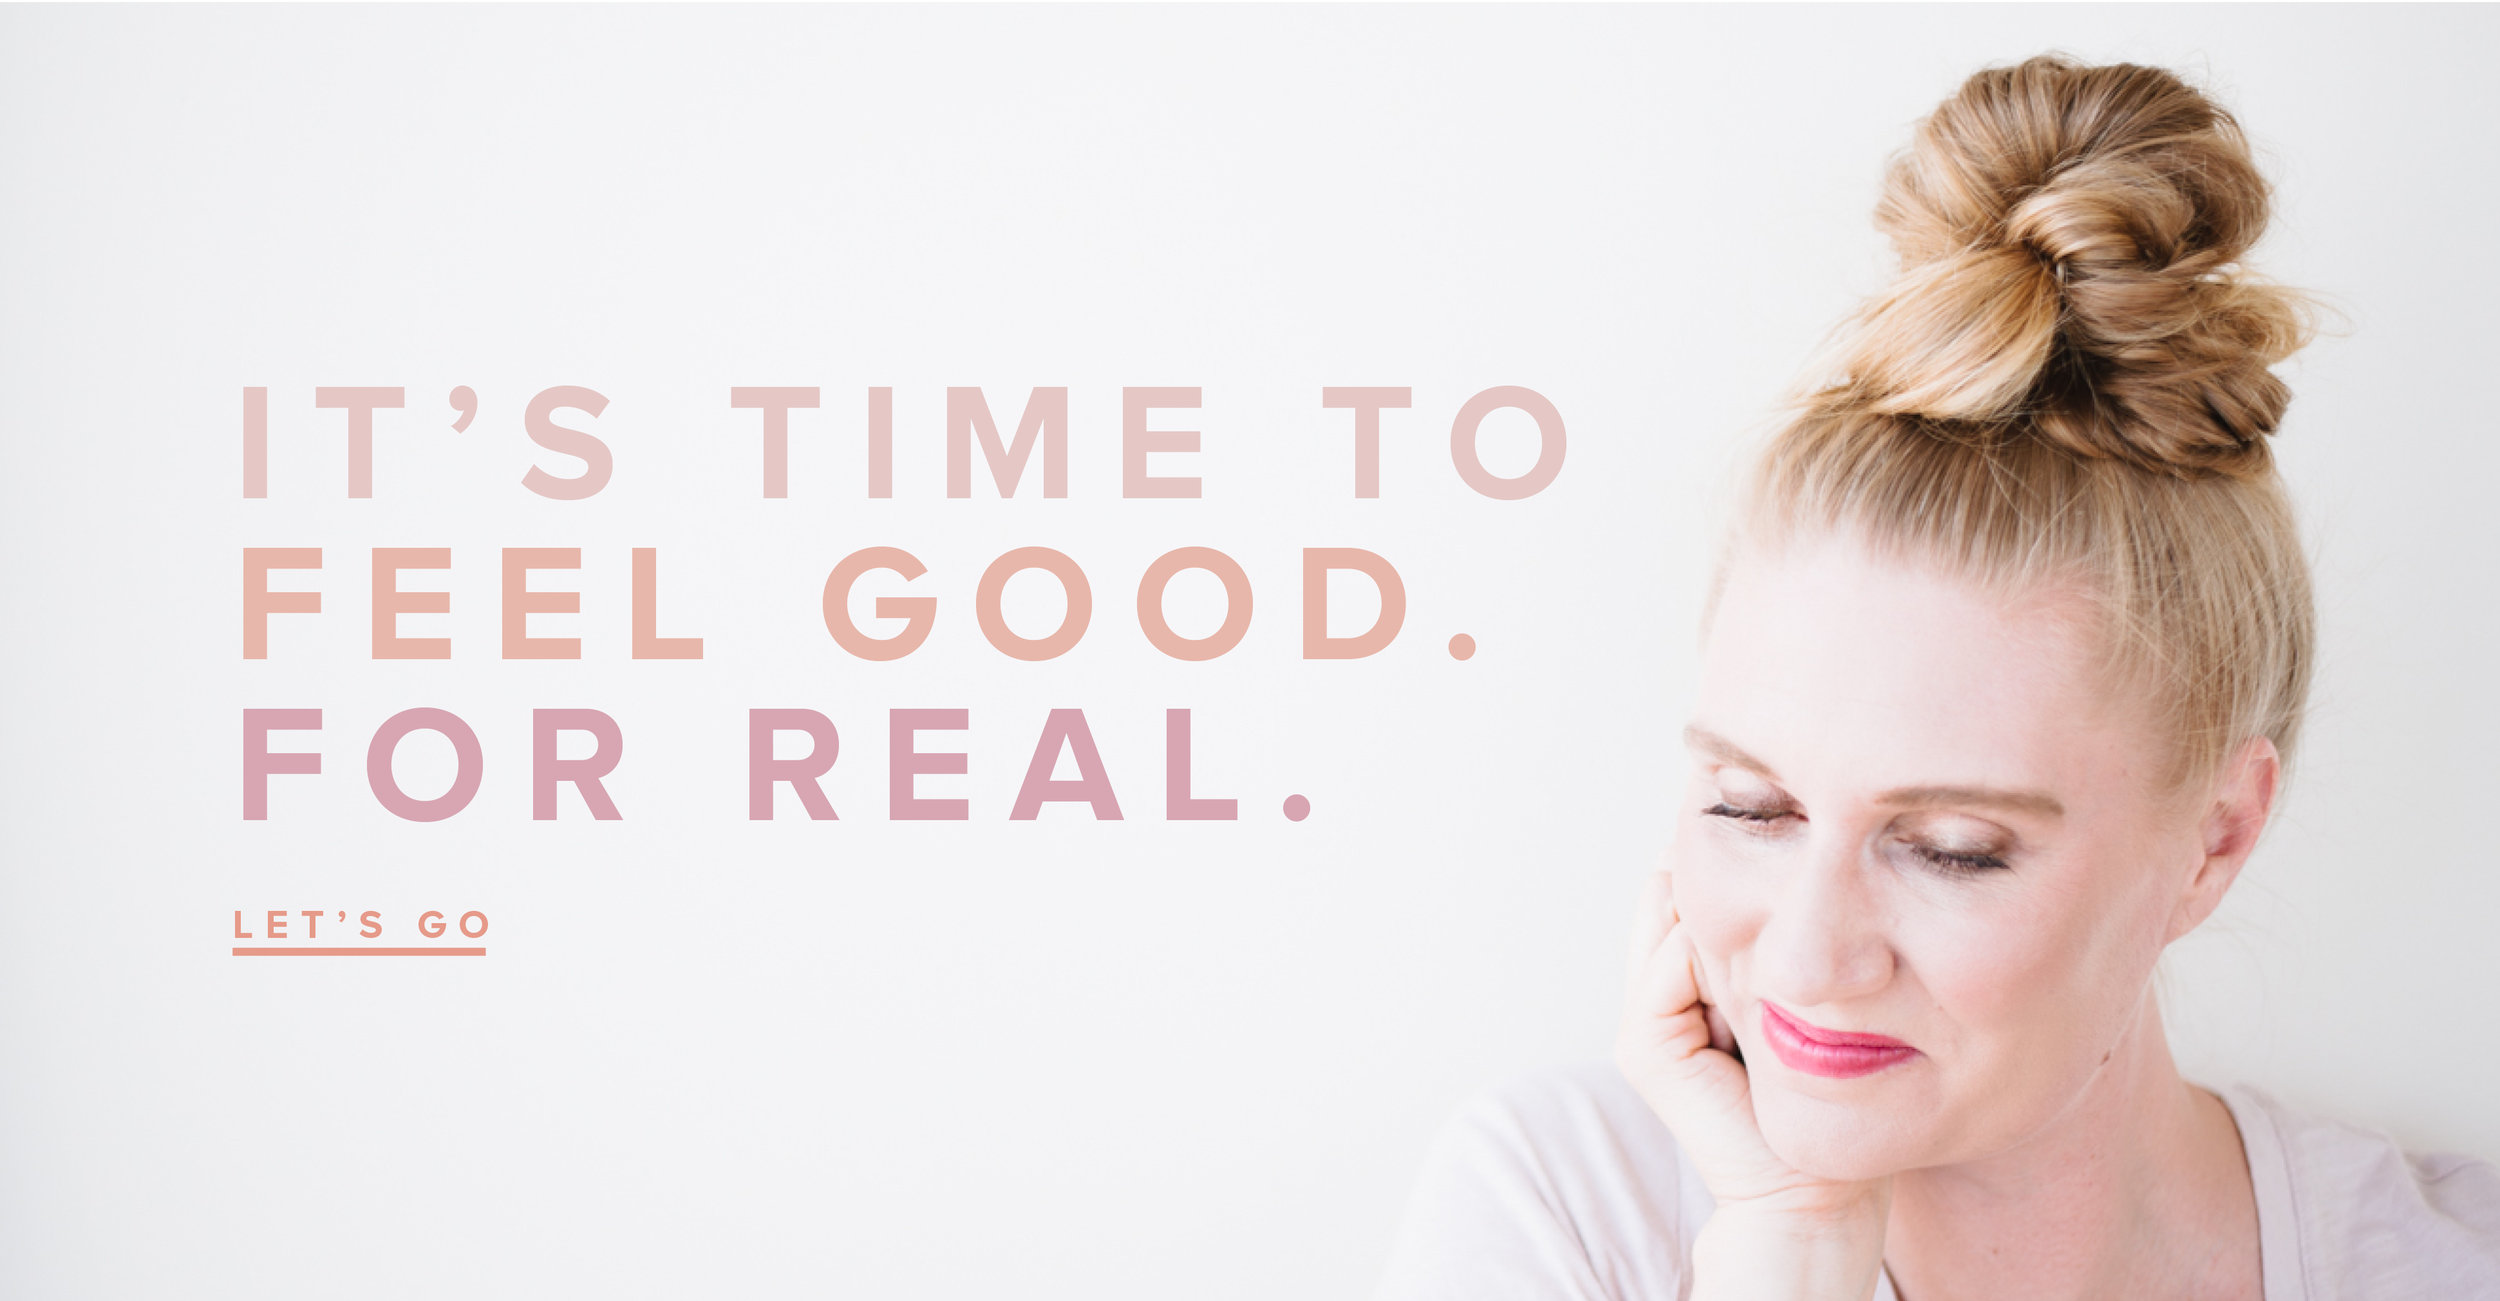 Welcome to Real Food Whole Life. It's time to feel good. For real.